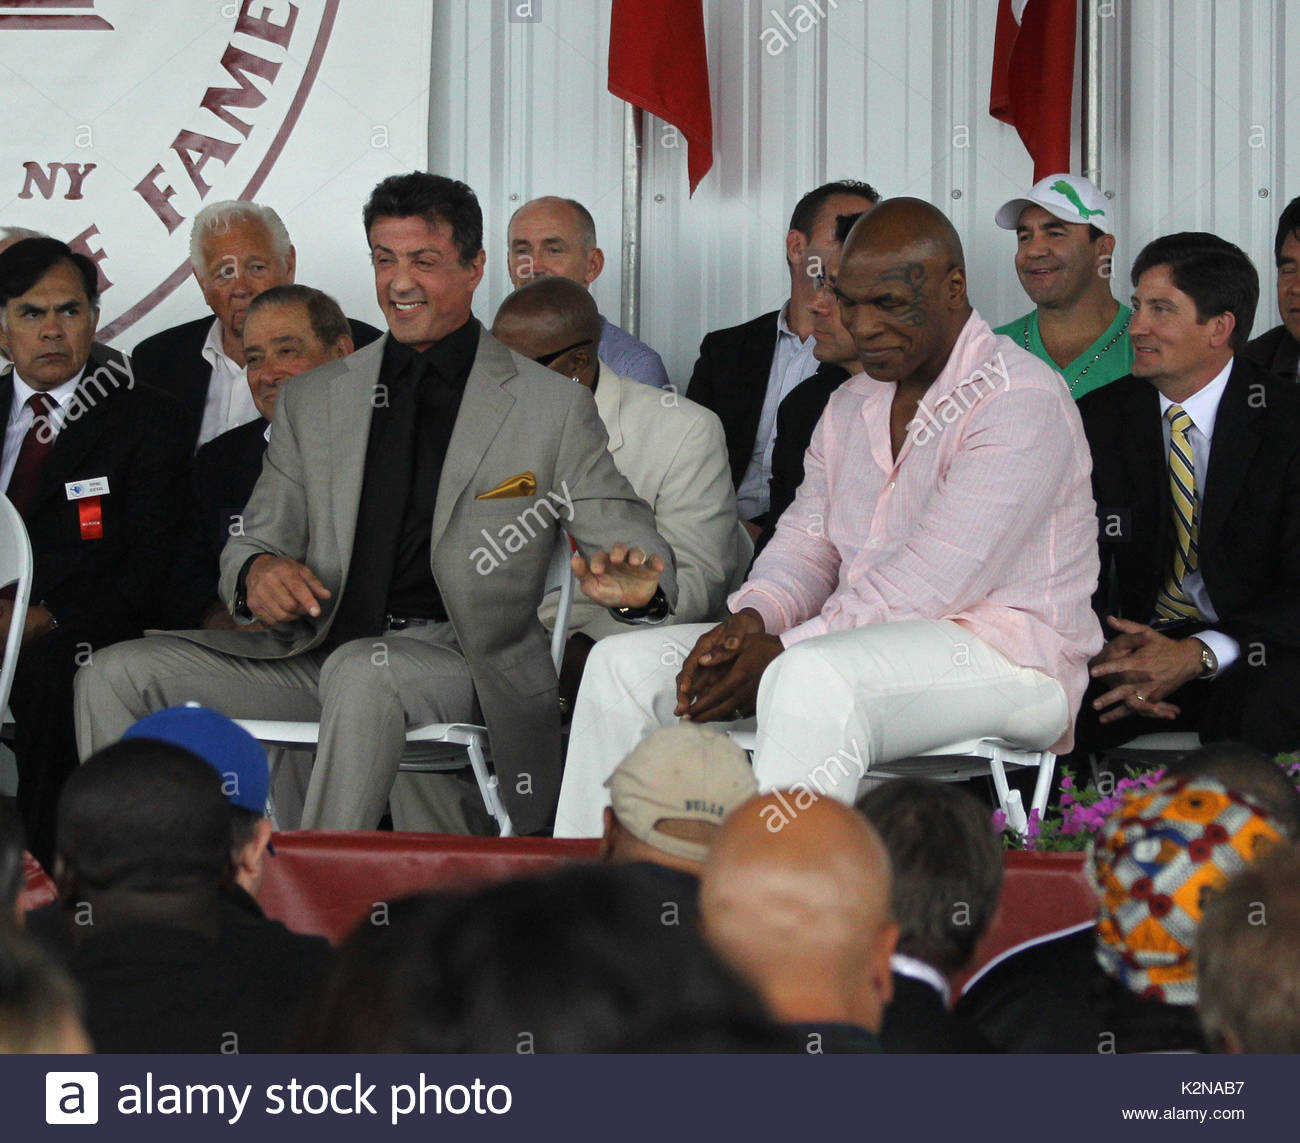 Mike tyson and sylvester stallone mike tyson and sylvester stallone mike tyson and sylvester stallone mike tyson and sylvester stallone have fun on stage at the boxing hall of fame together as they were inducted into the m4hsunfo